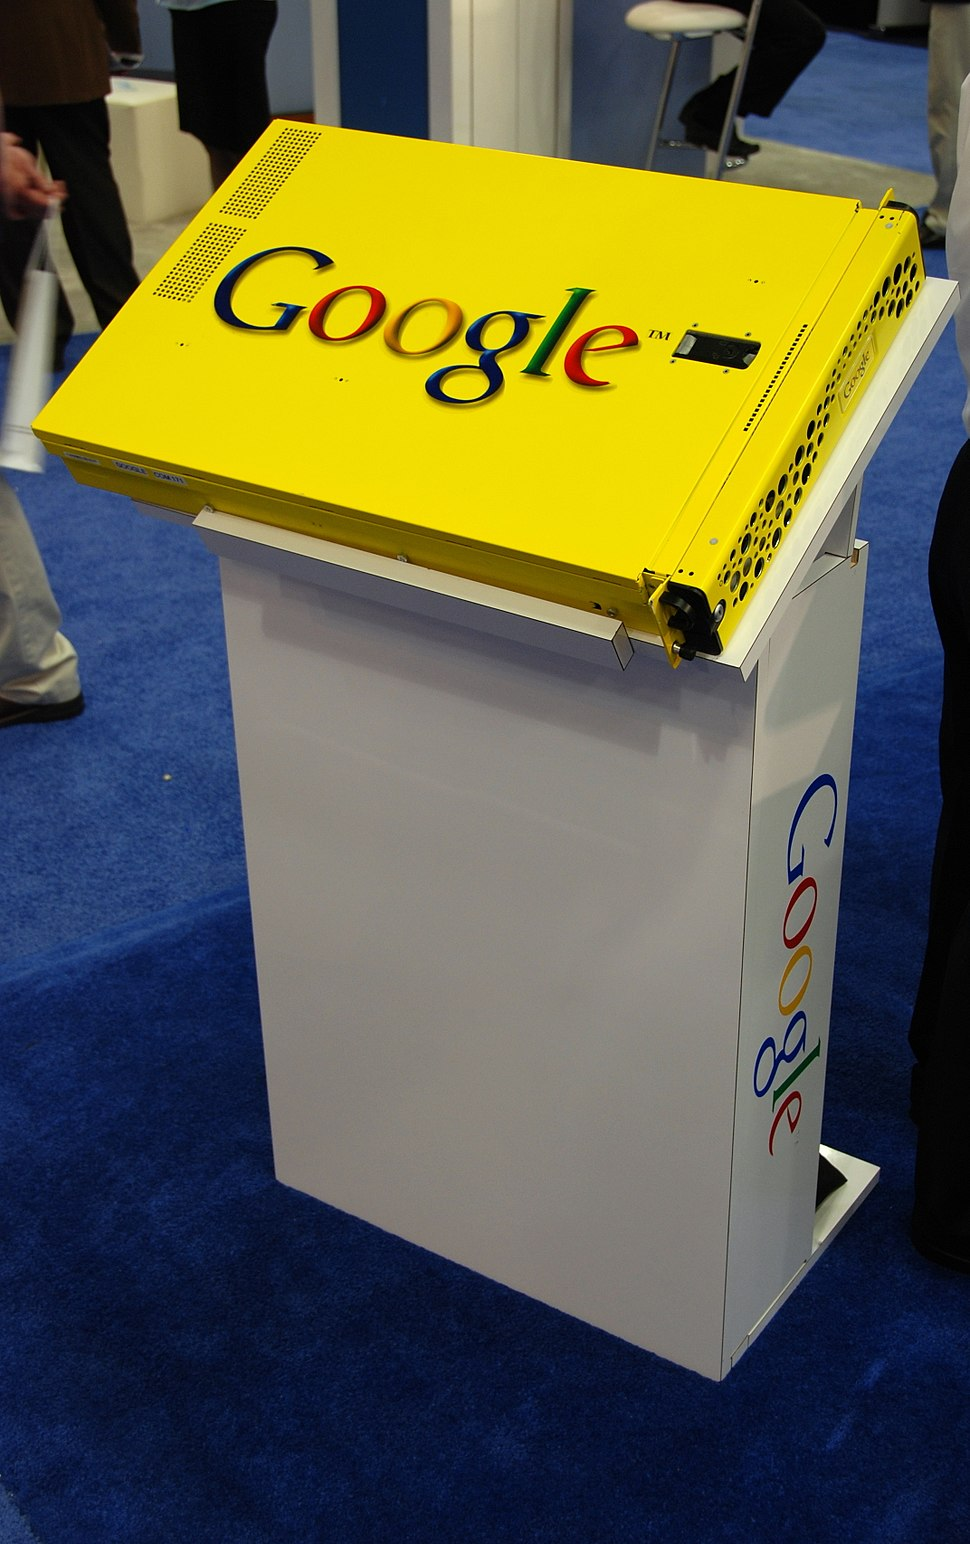 Google Appliance